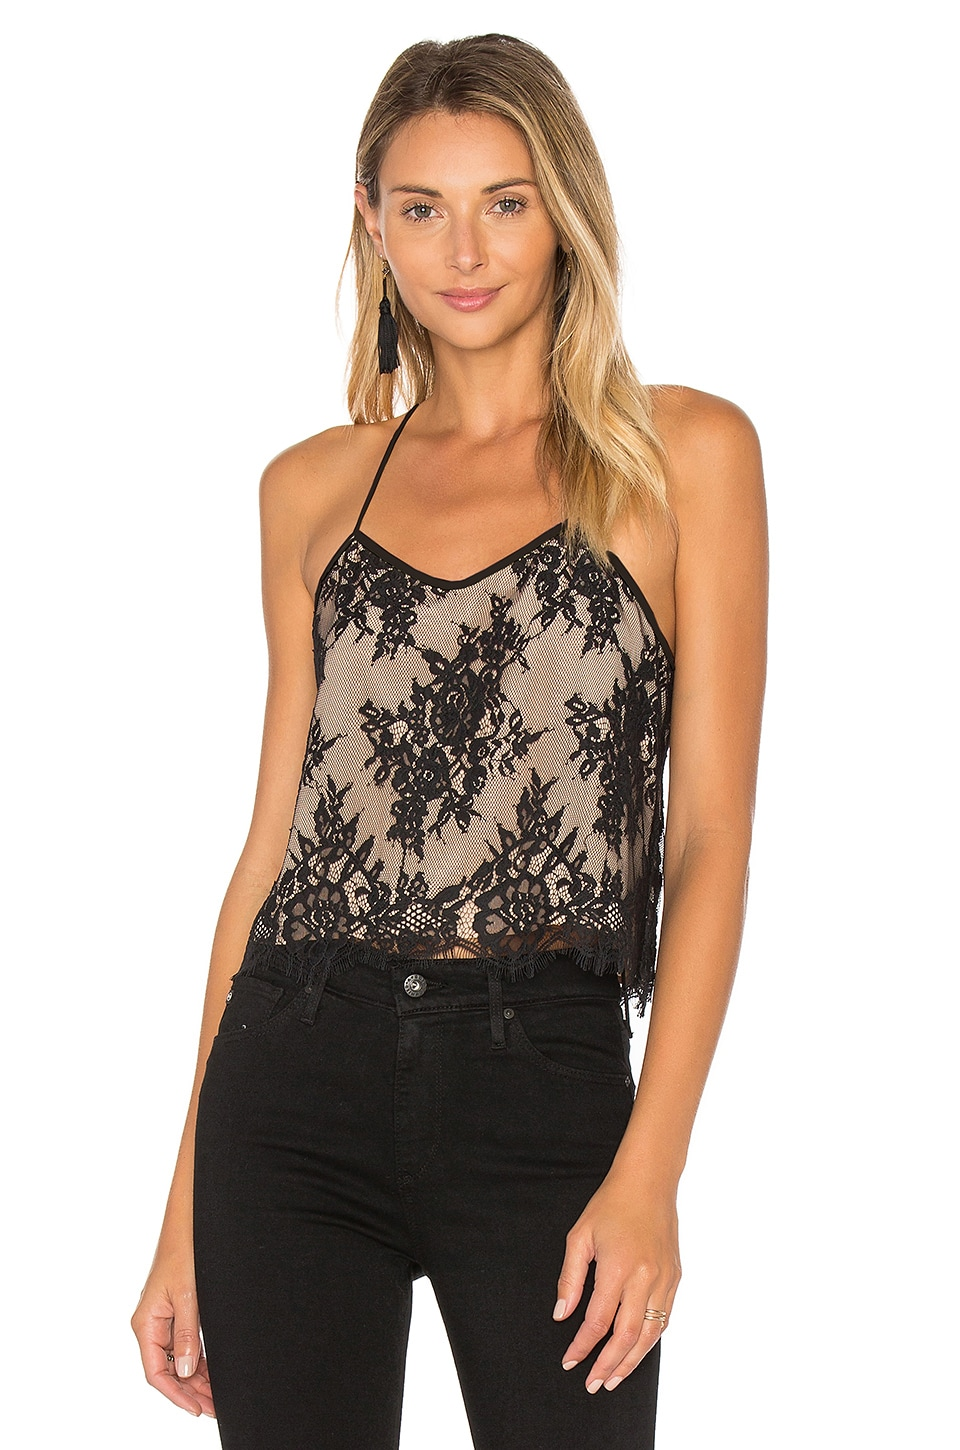 The Hannah Crop Cami by CAMI NYC